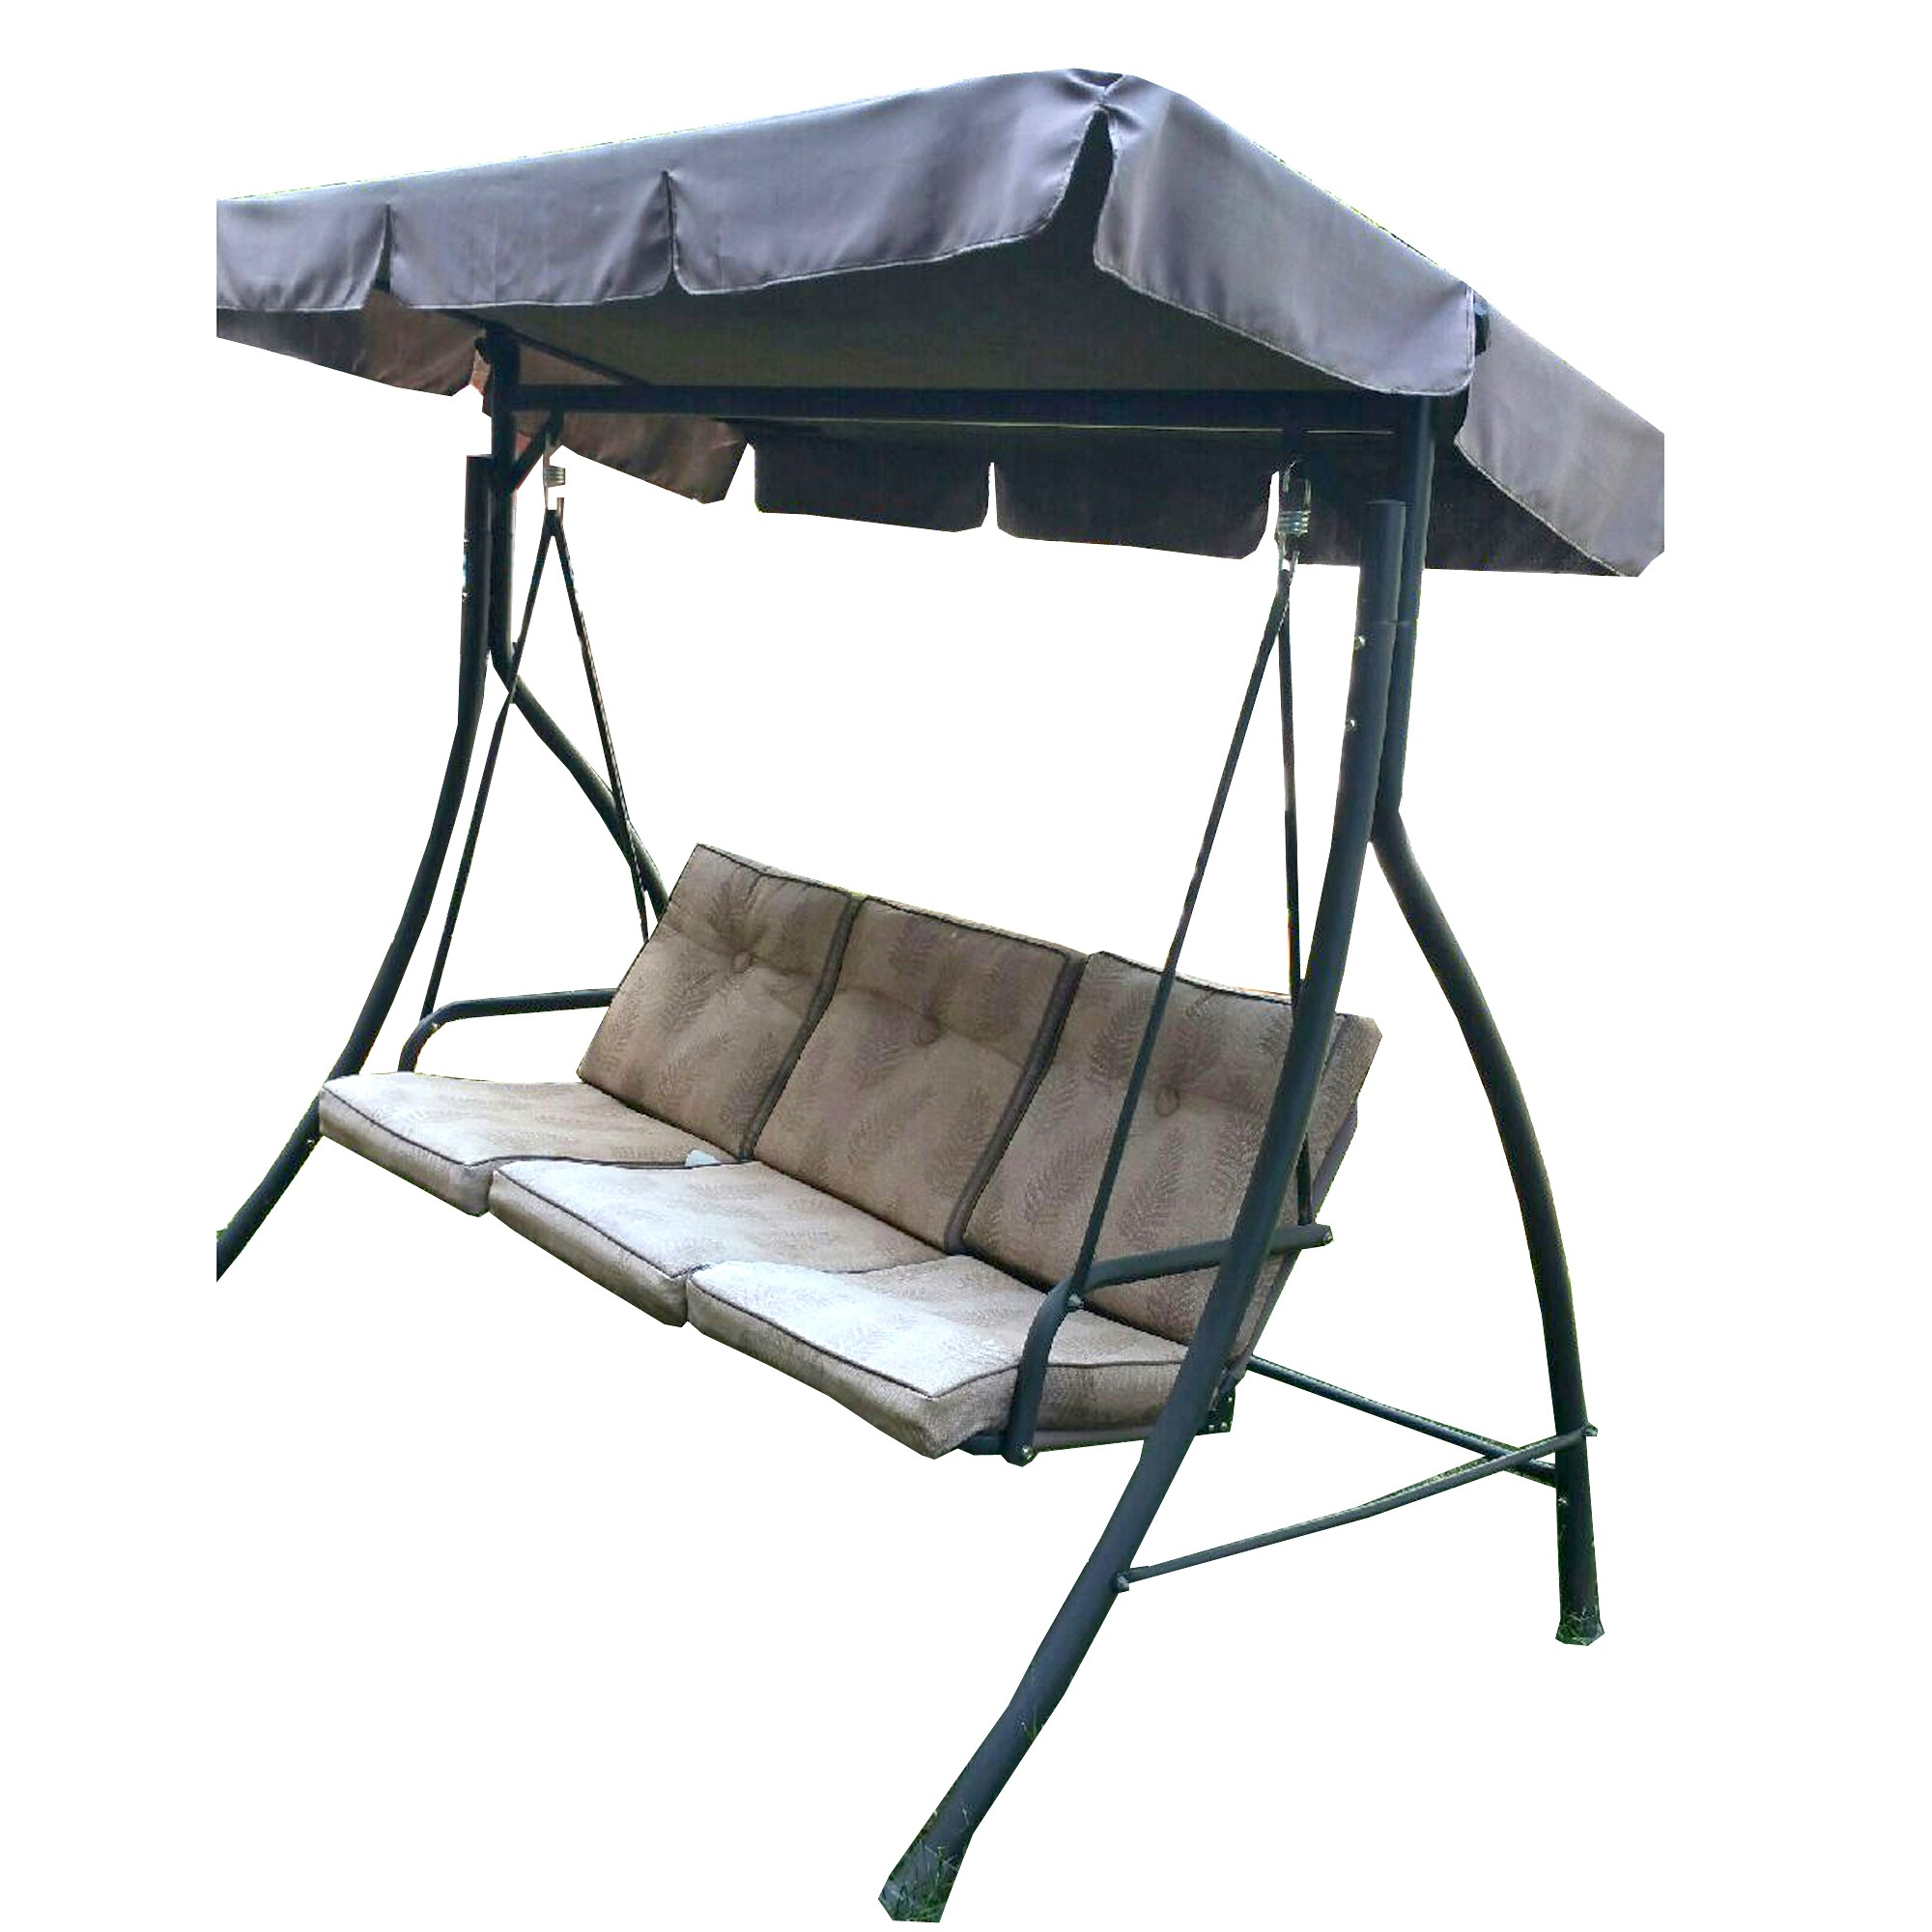 Replacement Canopy For Hd Flat Roof 3 Person Swing Garden Winds In 3 Person Brown Steel Outdoor Swings (View 19 of 25)